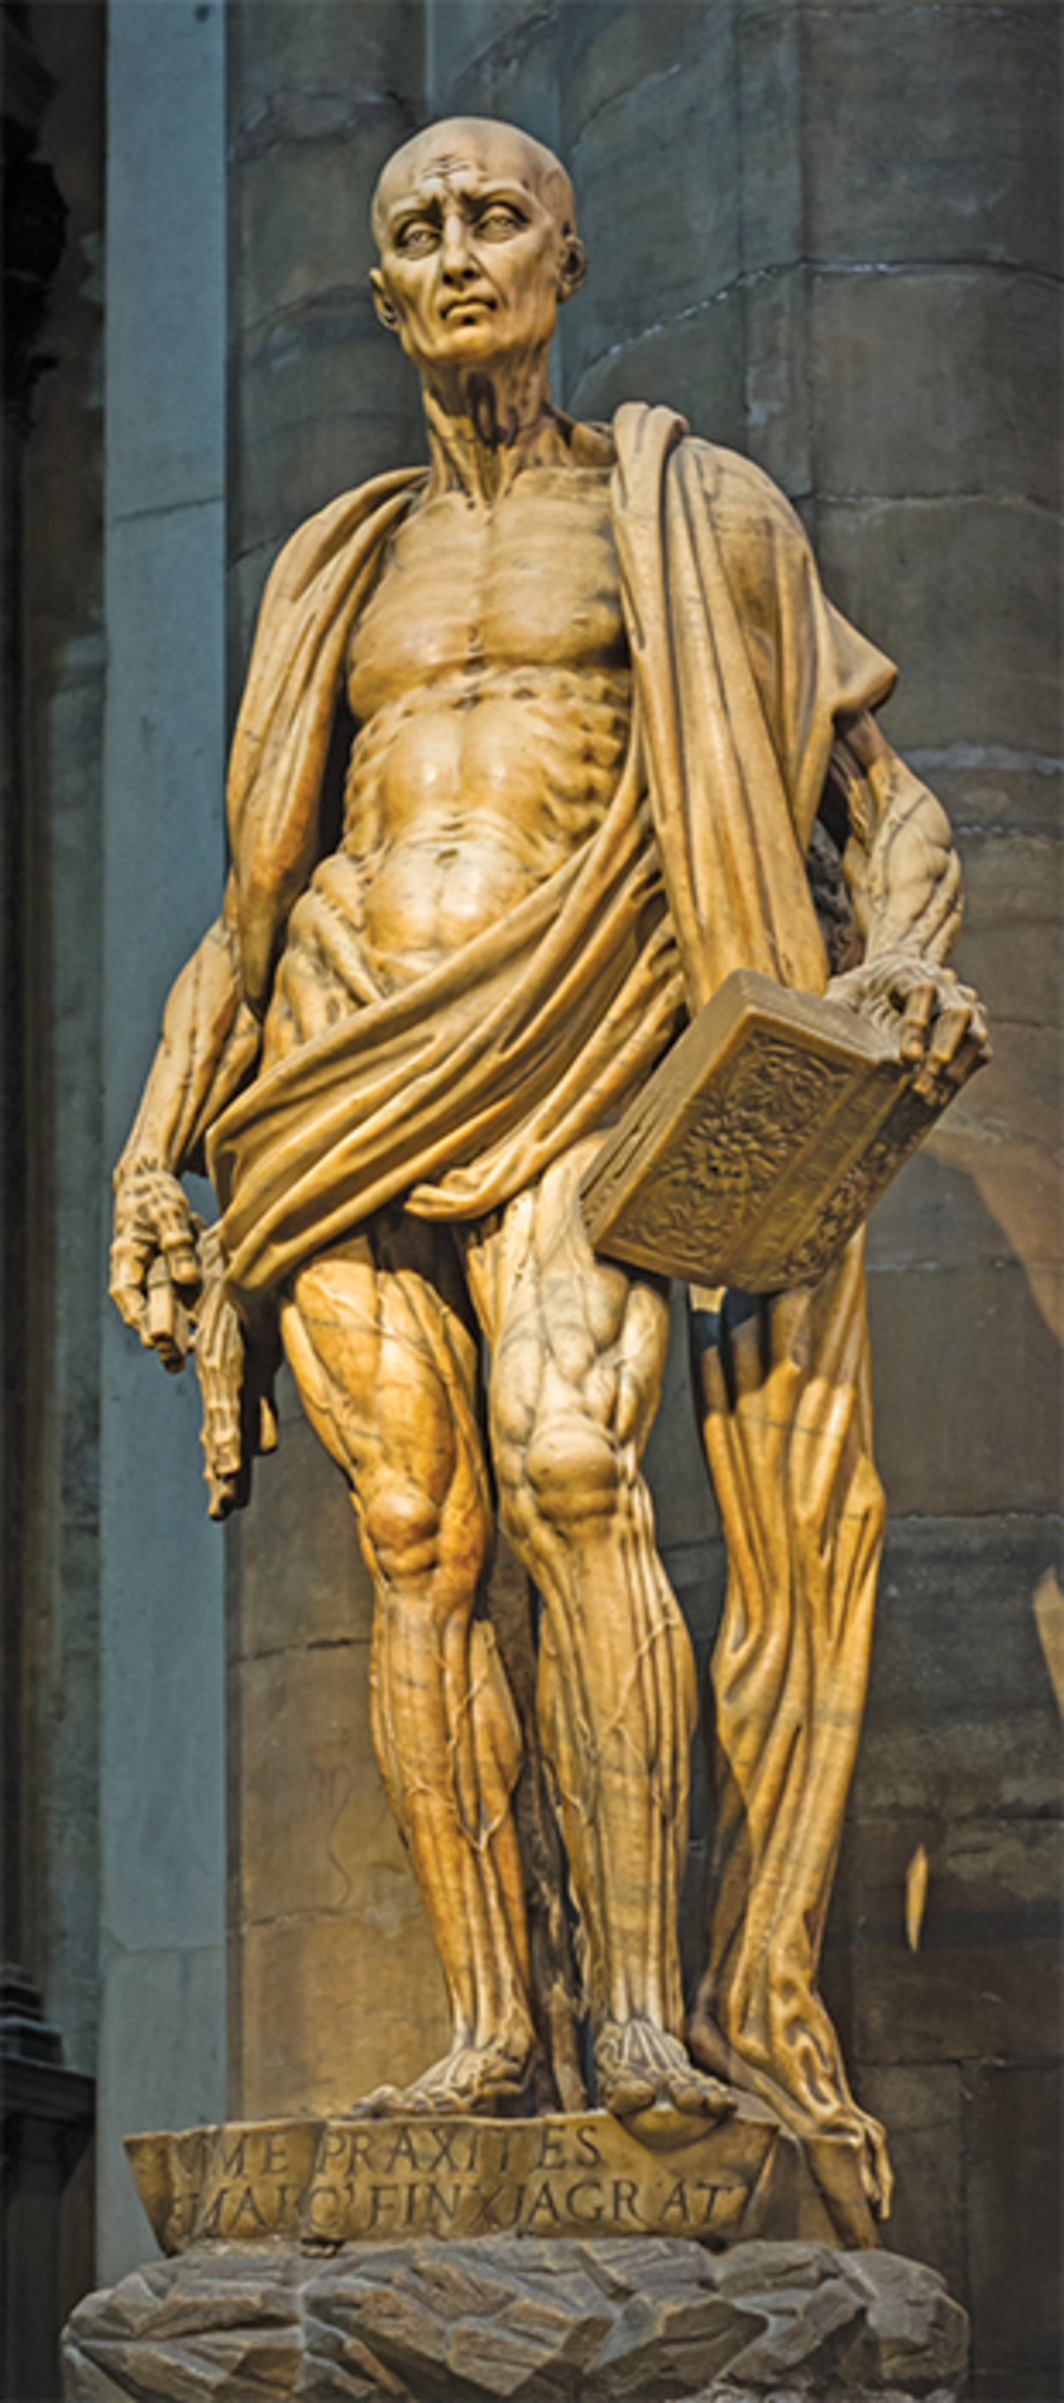 *Marco d'Agrate, _Saint Bartholomew Flayed_, 1562*, marble. Installation view, Duomo, Milan. Photo: Frank Schulenburg/Wikicommons.